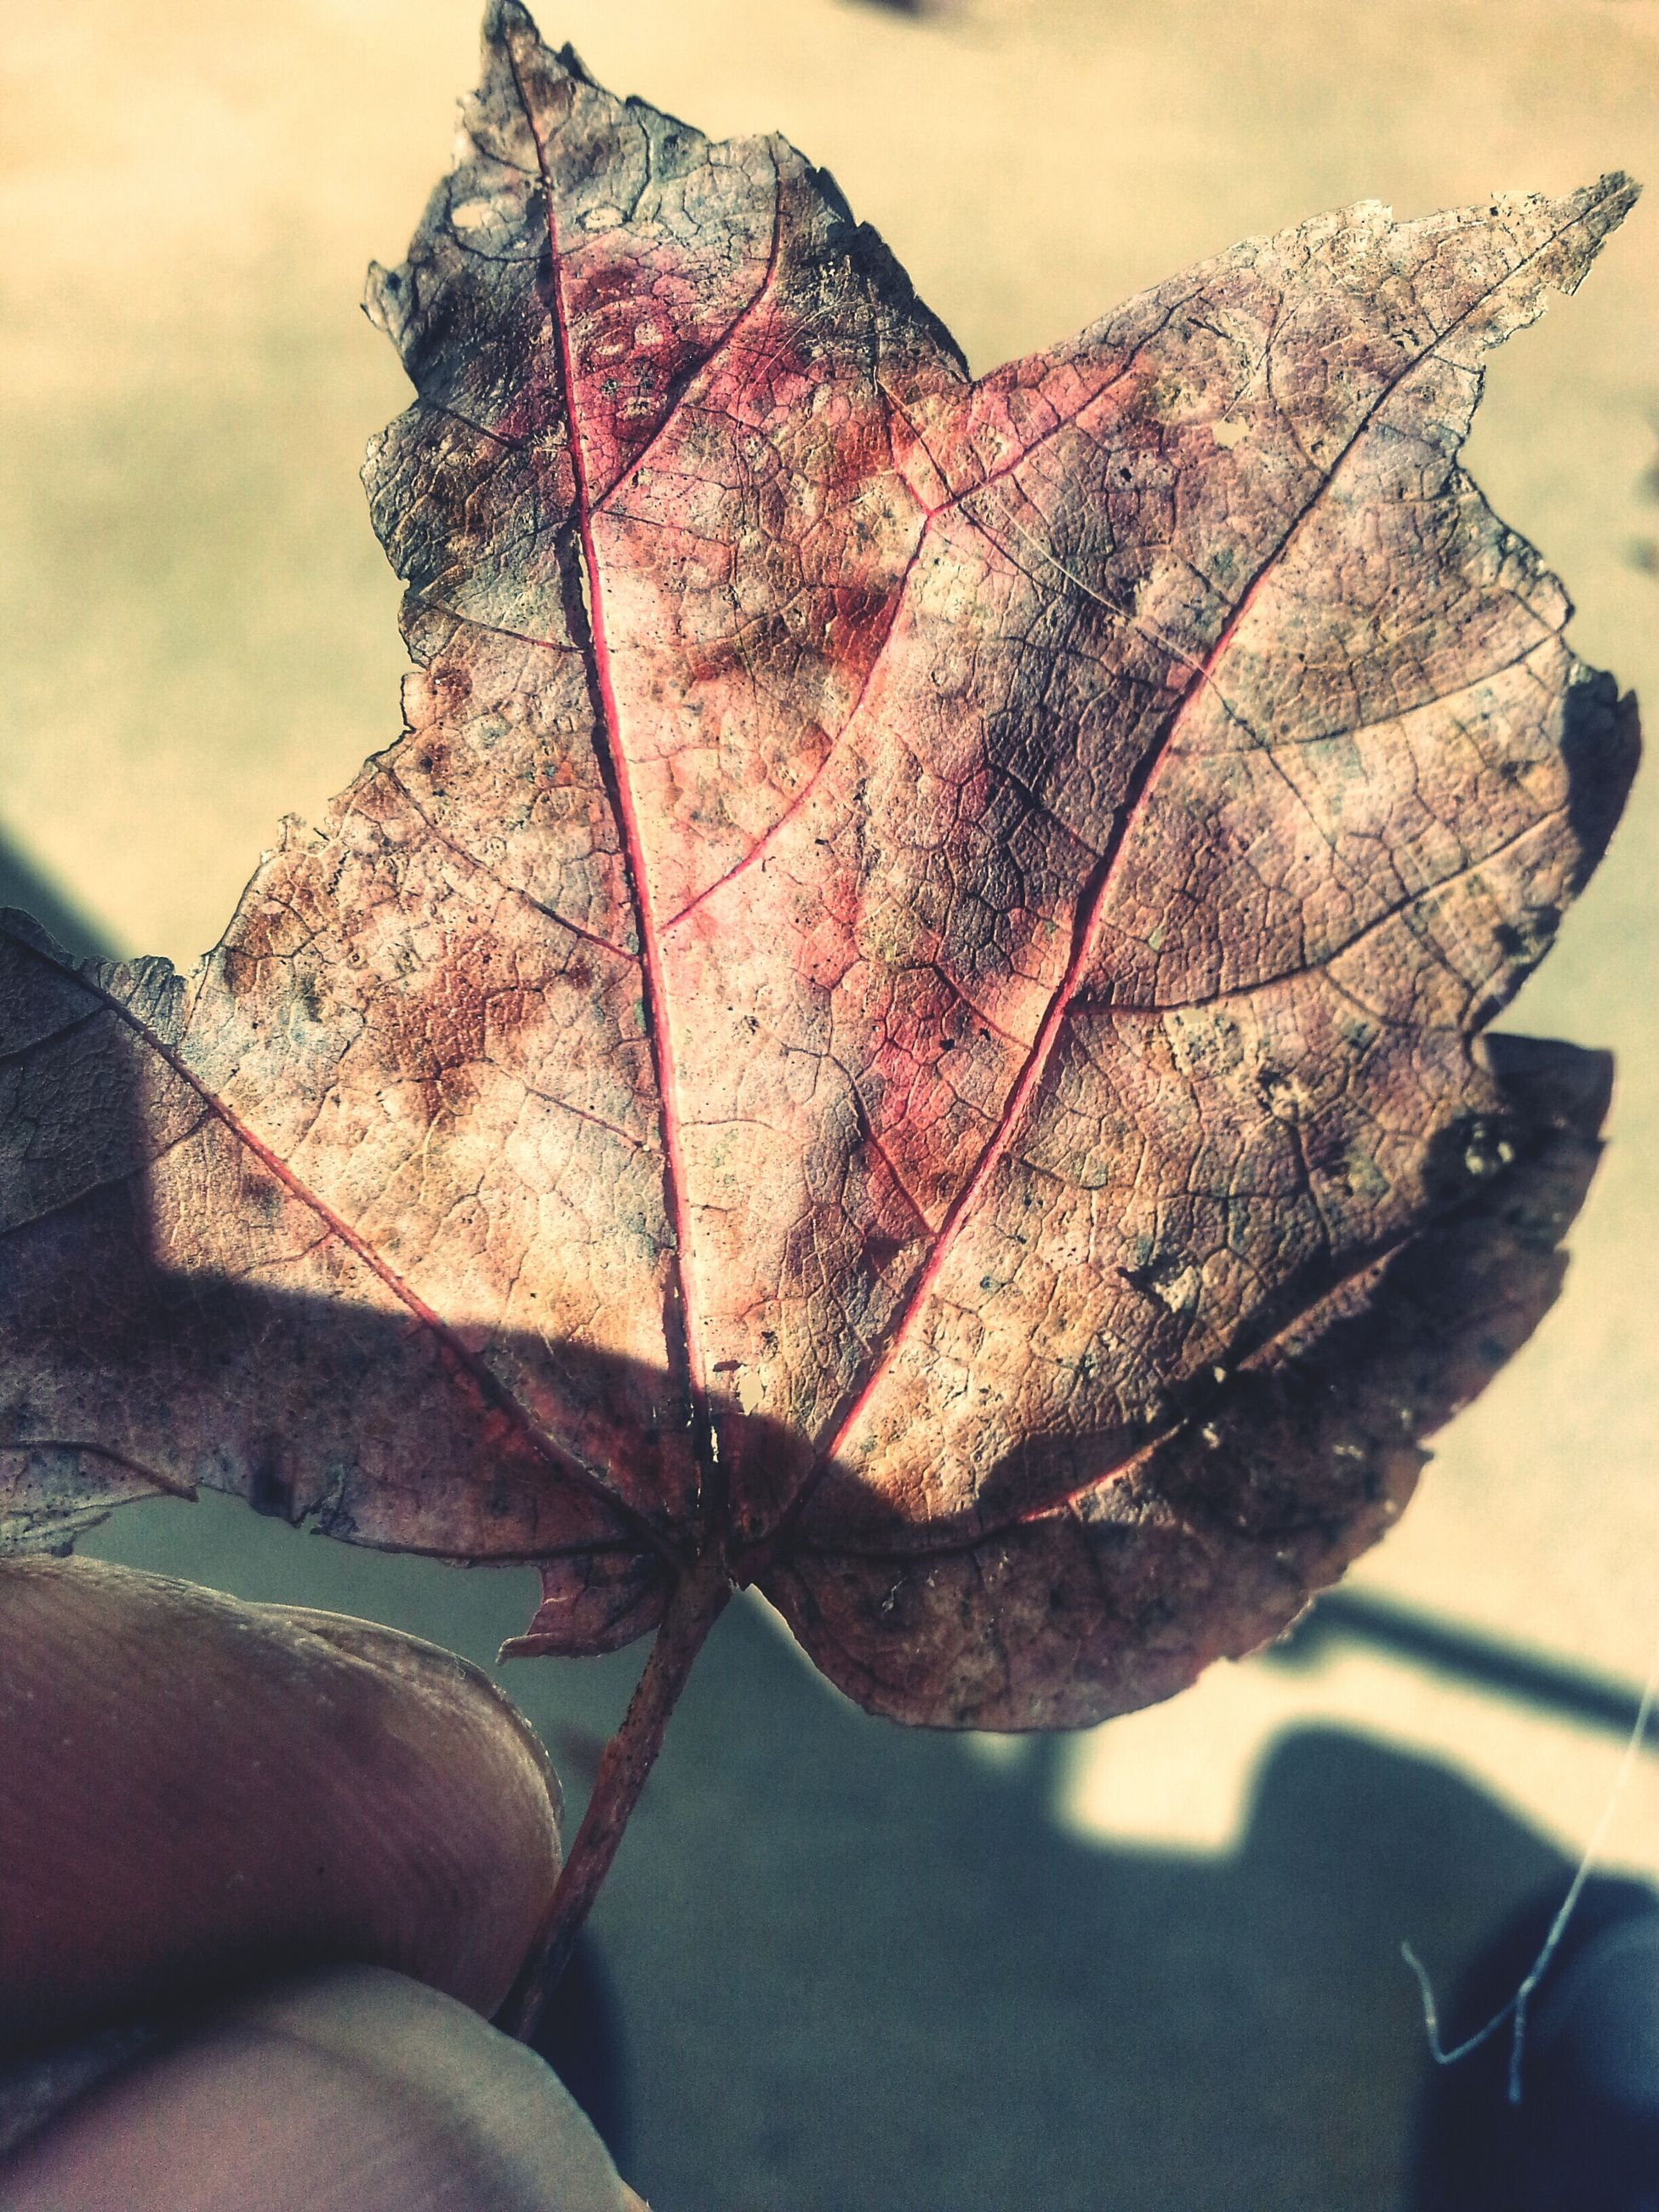 close-up, dry, focus on foreground, leaf vein, nature, natural pattern, leaf, sky, outdoors, dead plant, day, tranquility, part of, beauty in nature, sunlight, no people, fragility, autumn, branch, brown